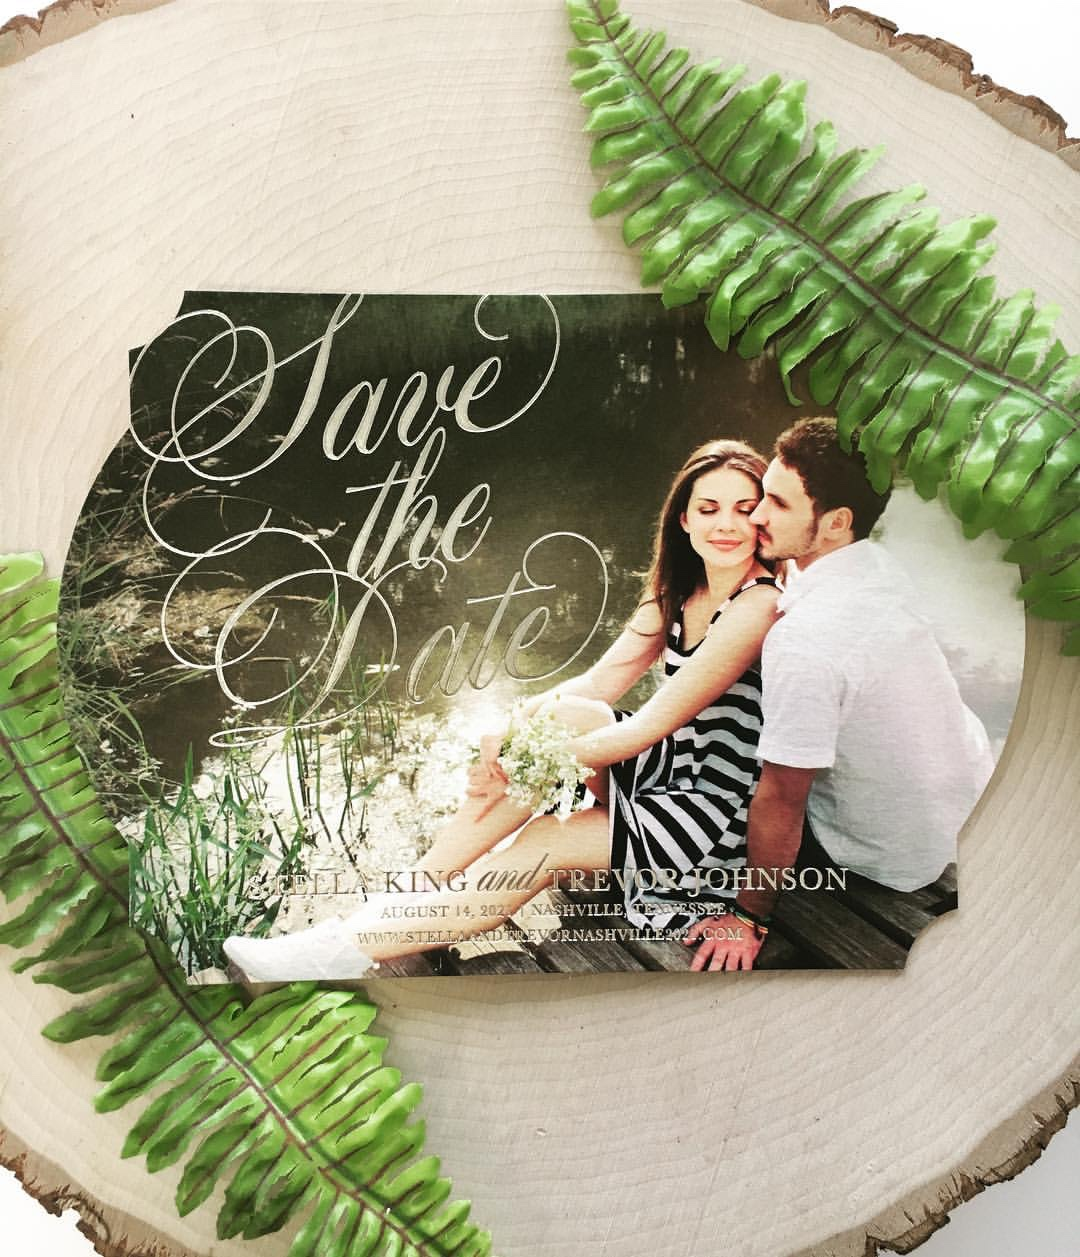 Your beautiful photo is the background of this stunning die-cut & foil stamped save the date card.